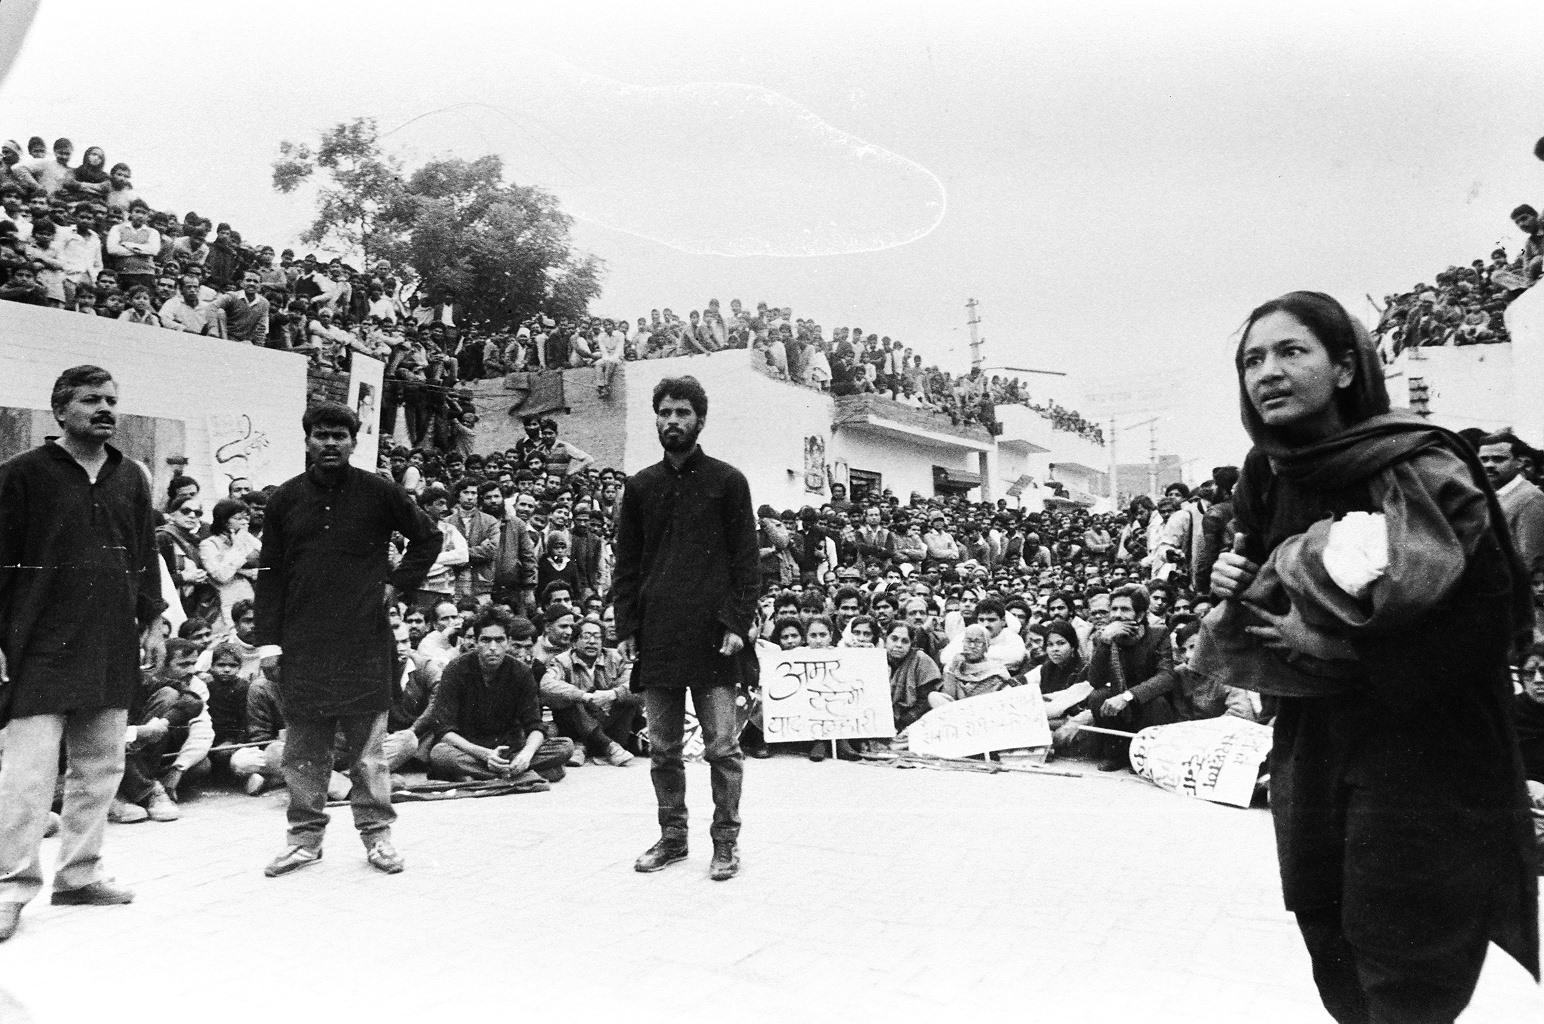 In this picture are (left to right) Subhash Tyagi, Jogi, Brijender and Moloyashree. The actor she is speaking to, who is not in the frame, is me. Vishwajeet Pradhan, who played the cop, is sitting between Jogi and Brijender. Thousands of people turned up for the show – local workers, of course, but also about a dozen bus-full of people from Delhi.